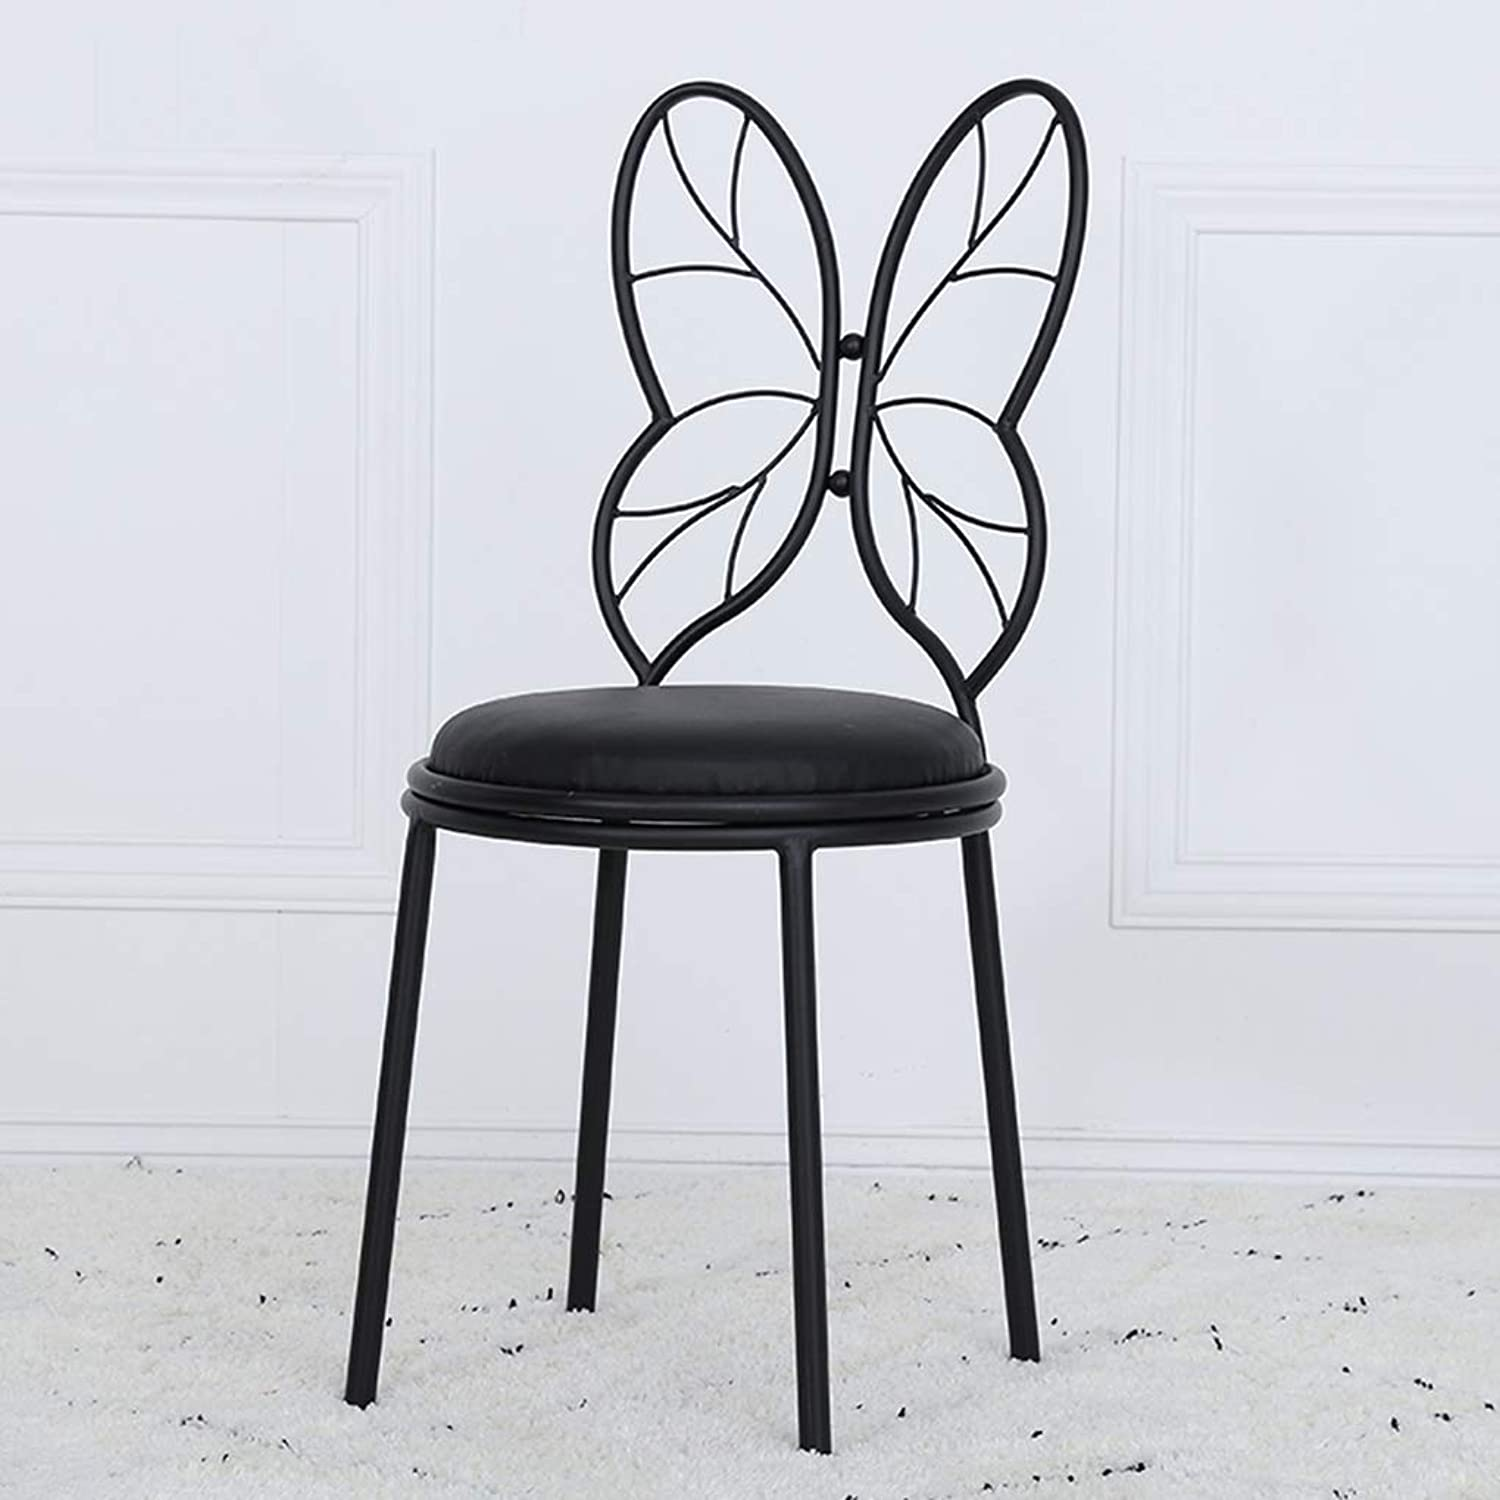 Butterfly Chair, Nordic Light Luxury Iron Dining Chair Simple Front Desk Fashion Chair Lounge Chair Makeup Stool Small Backrest Wrought Iron Chair,F